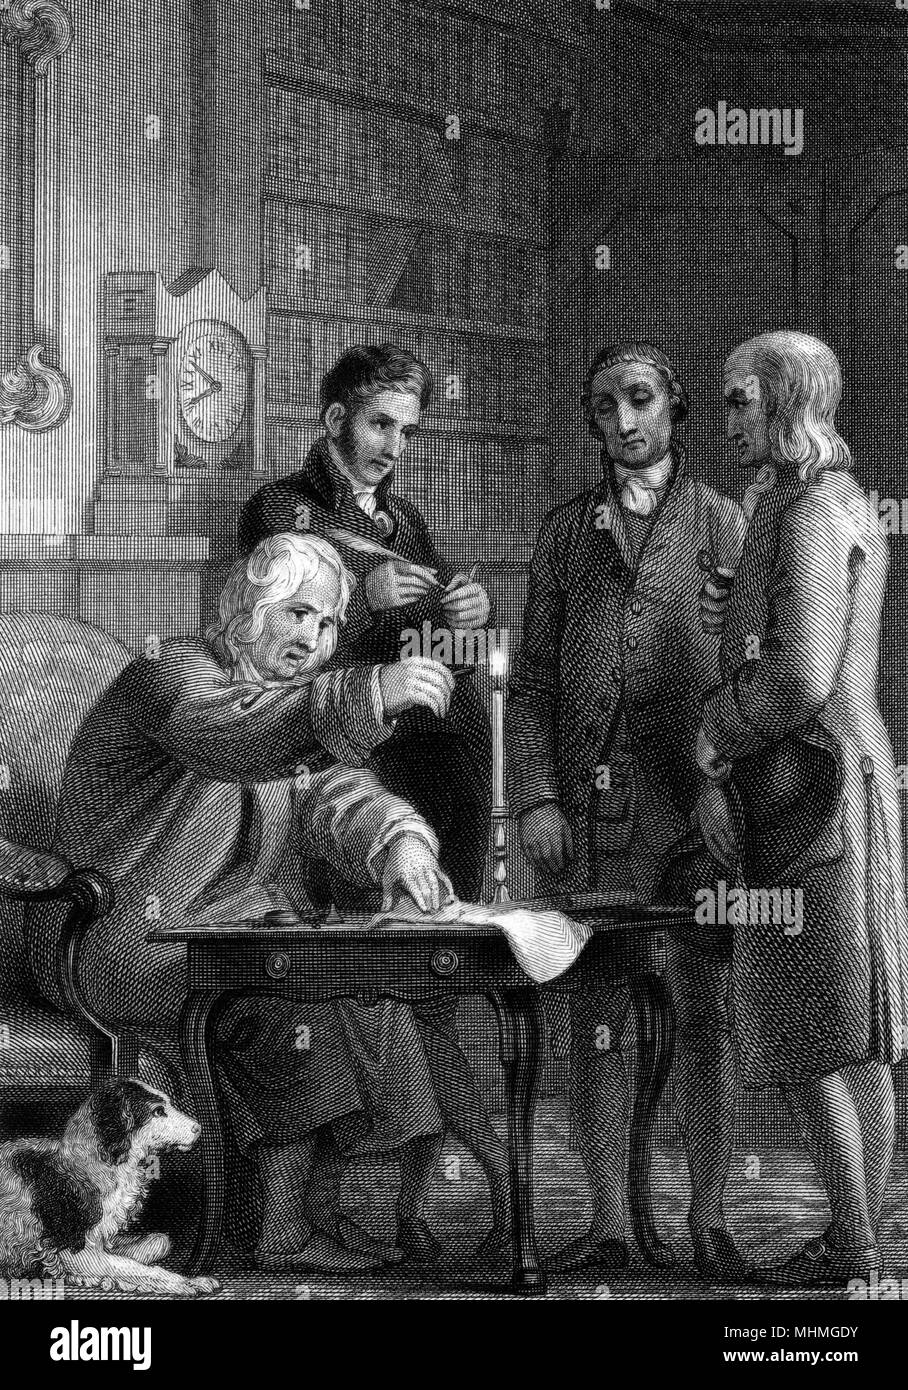 Sealing a letter with wax.        Date: circa 1840 - Stock Image